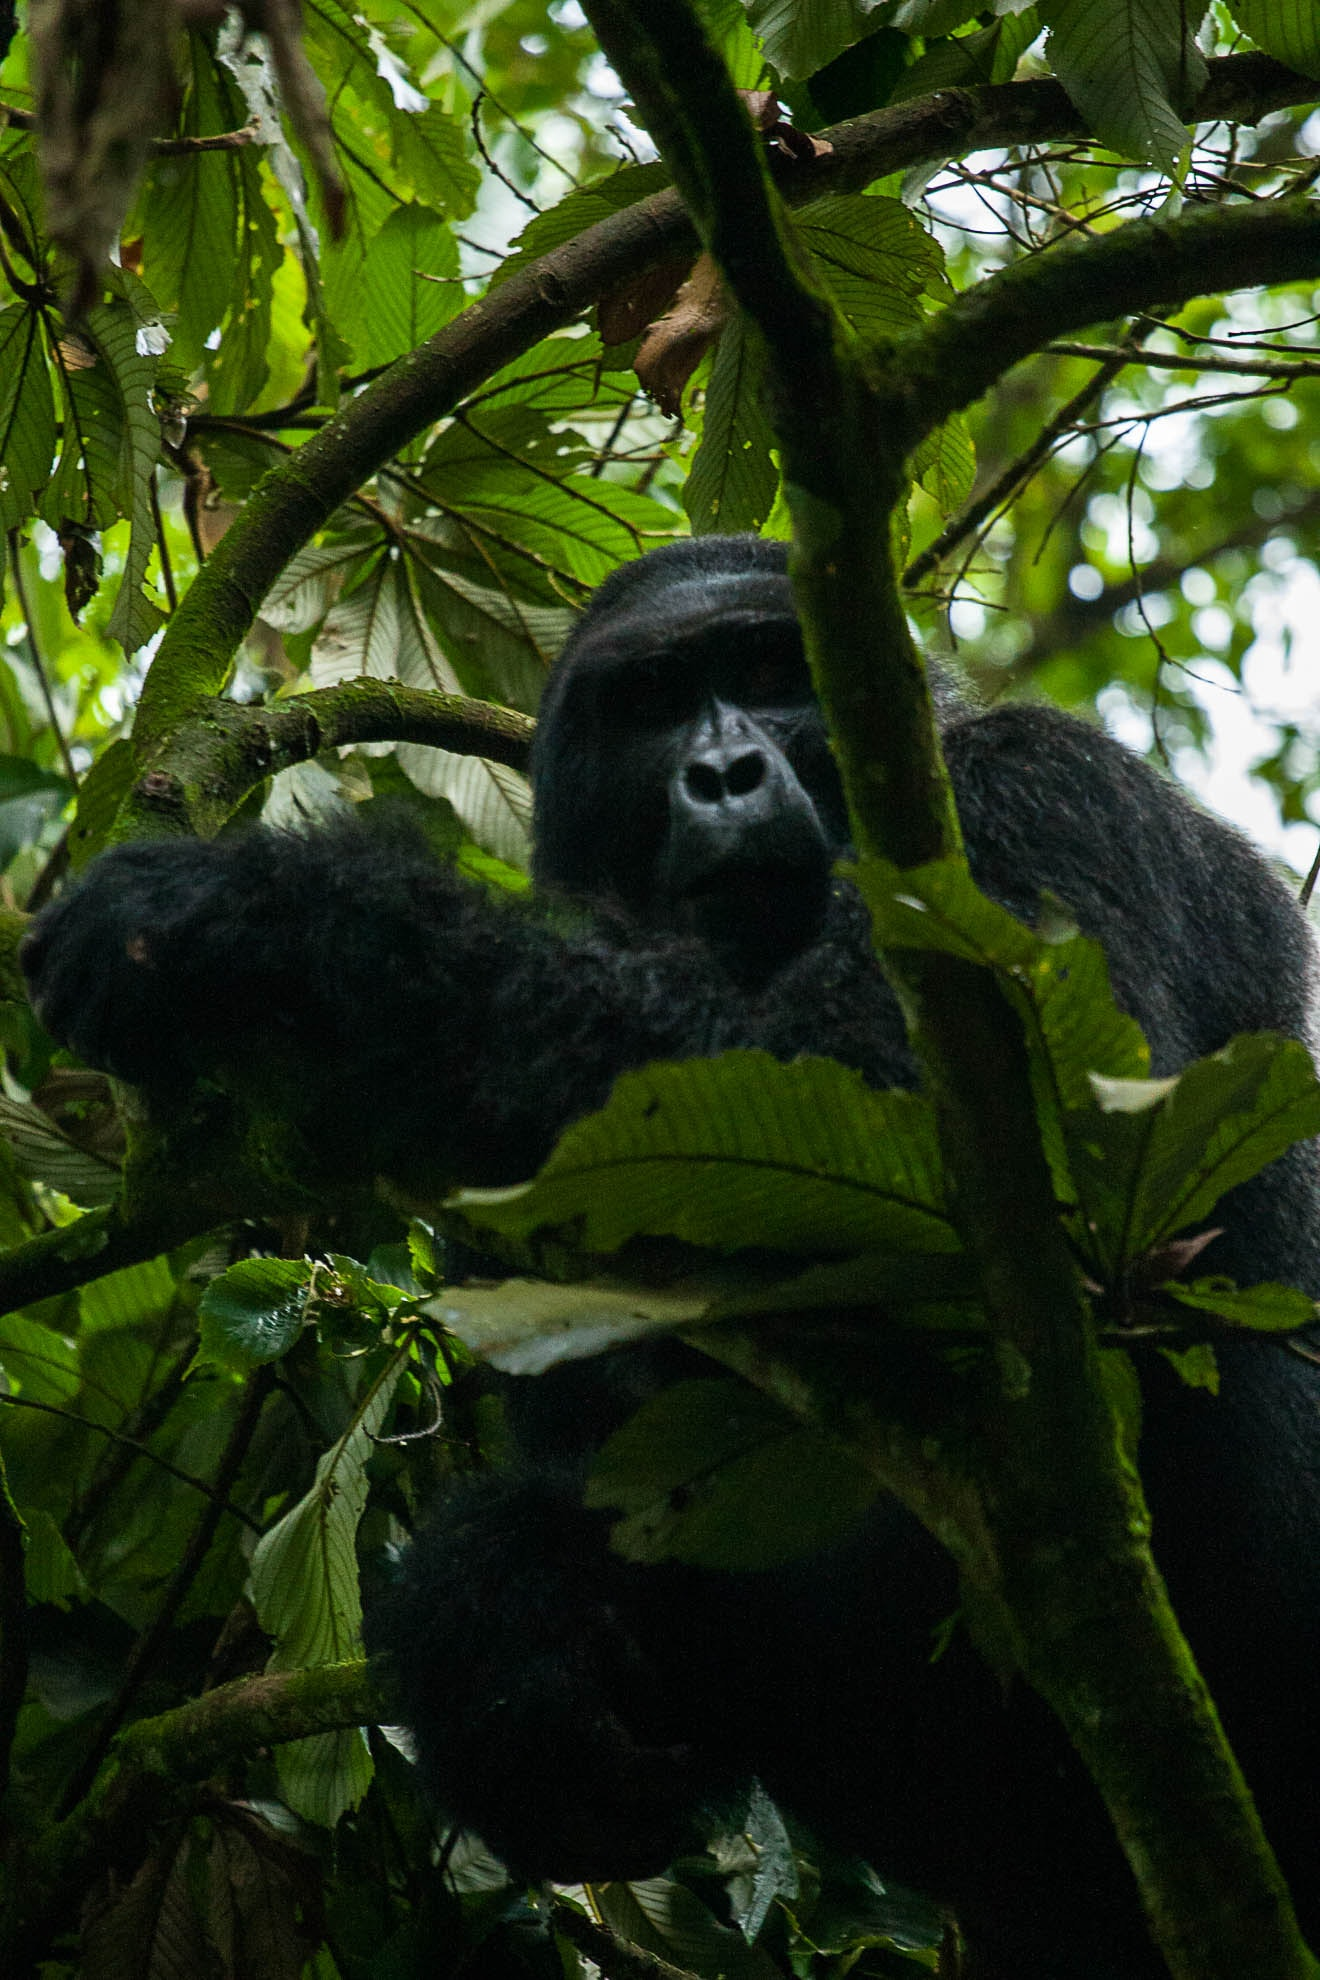 Gorilla in a tree looking down